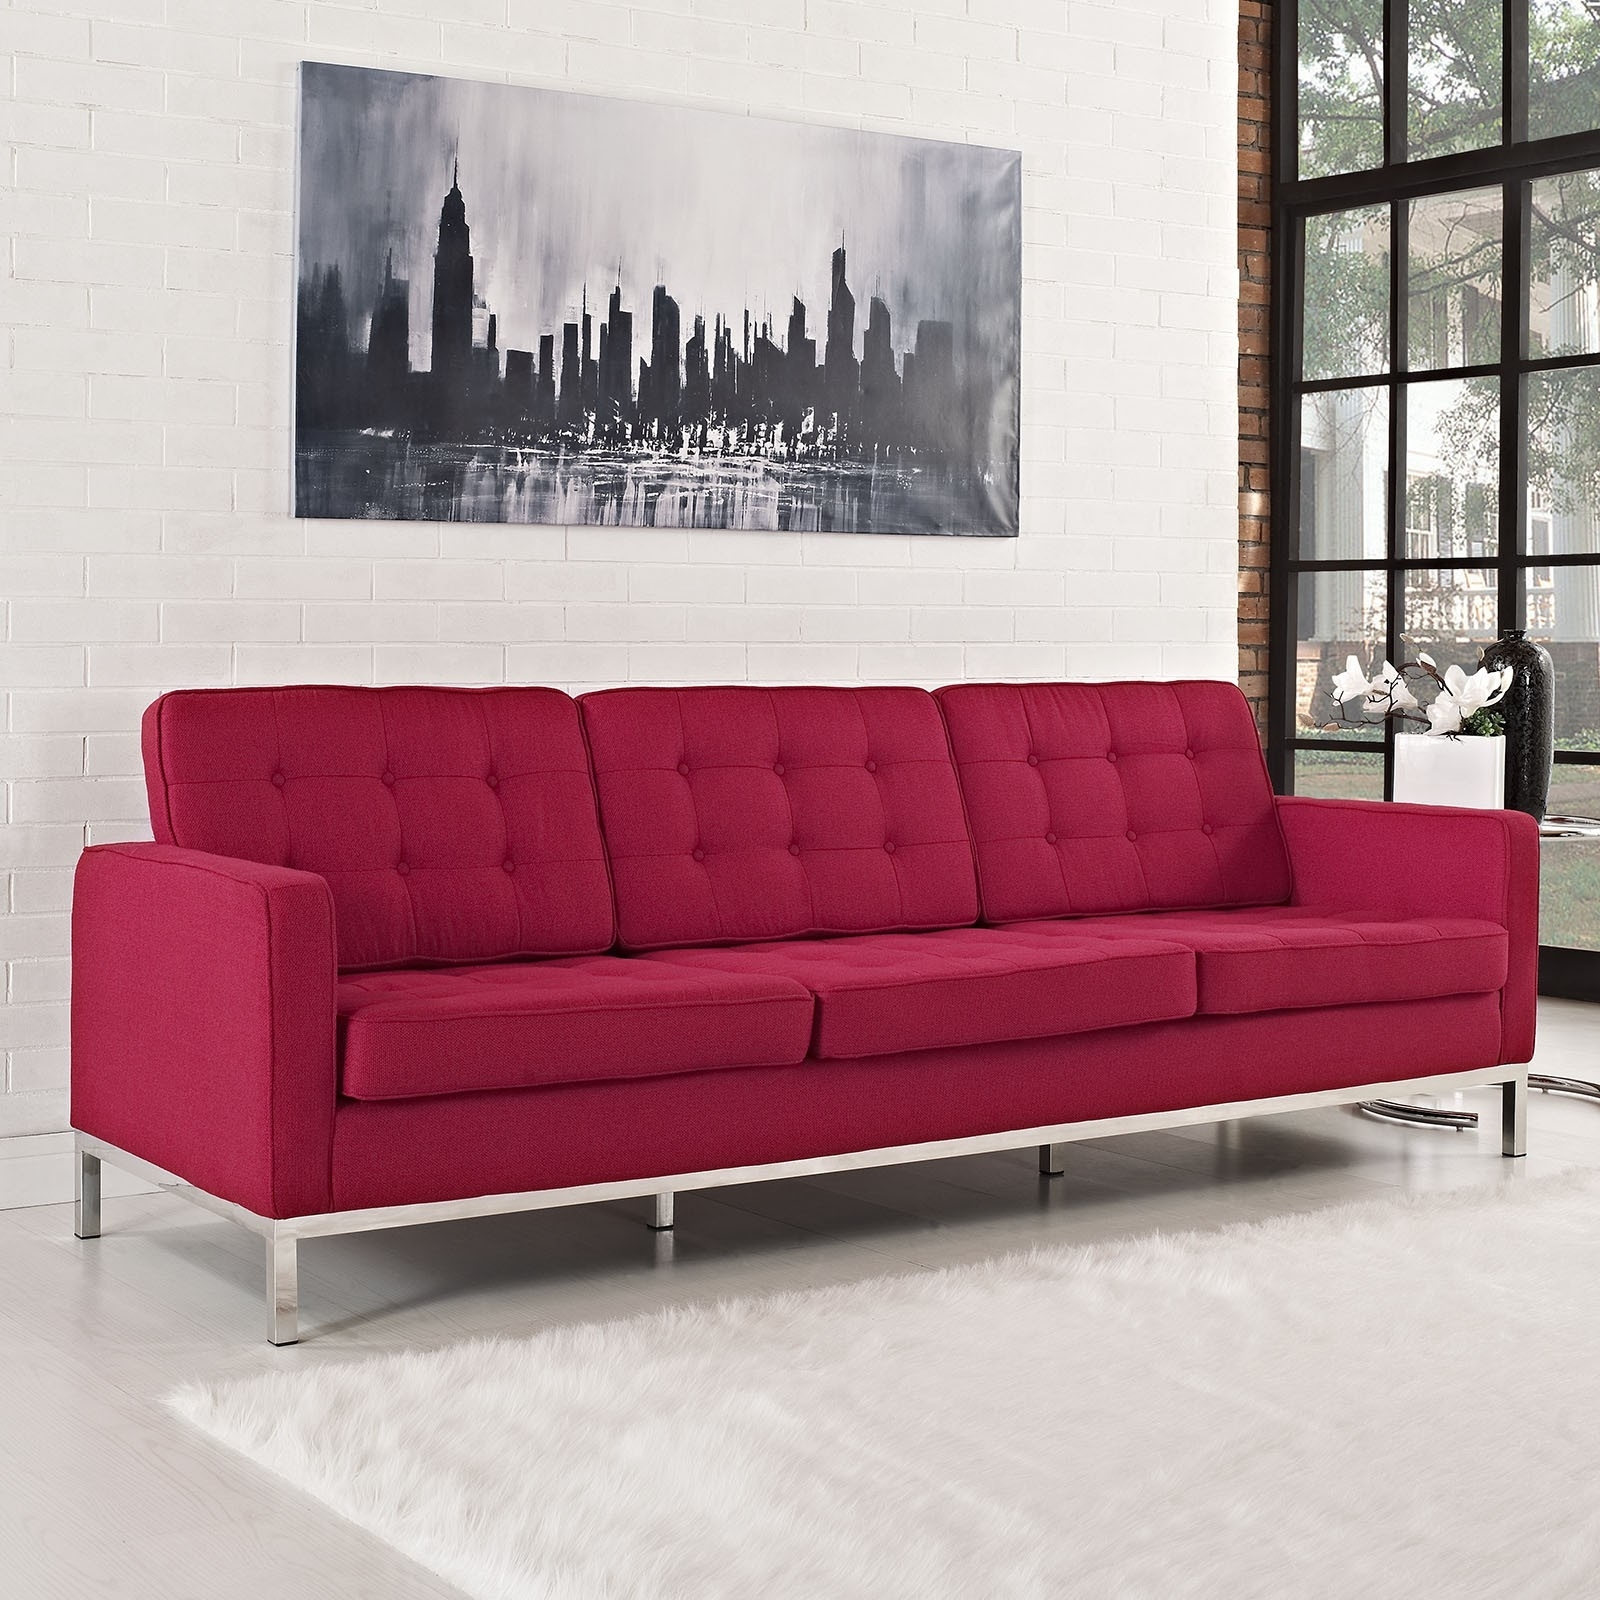 Preferred Sofa : View Florence Knoll Style Sofa Interior Design For Home Inside Florence Knoll Style Sofas (View 17 of 20)